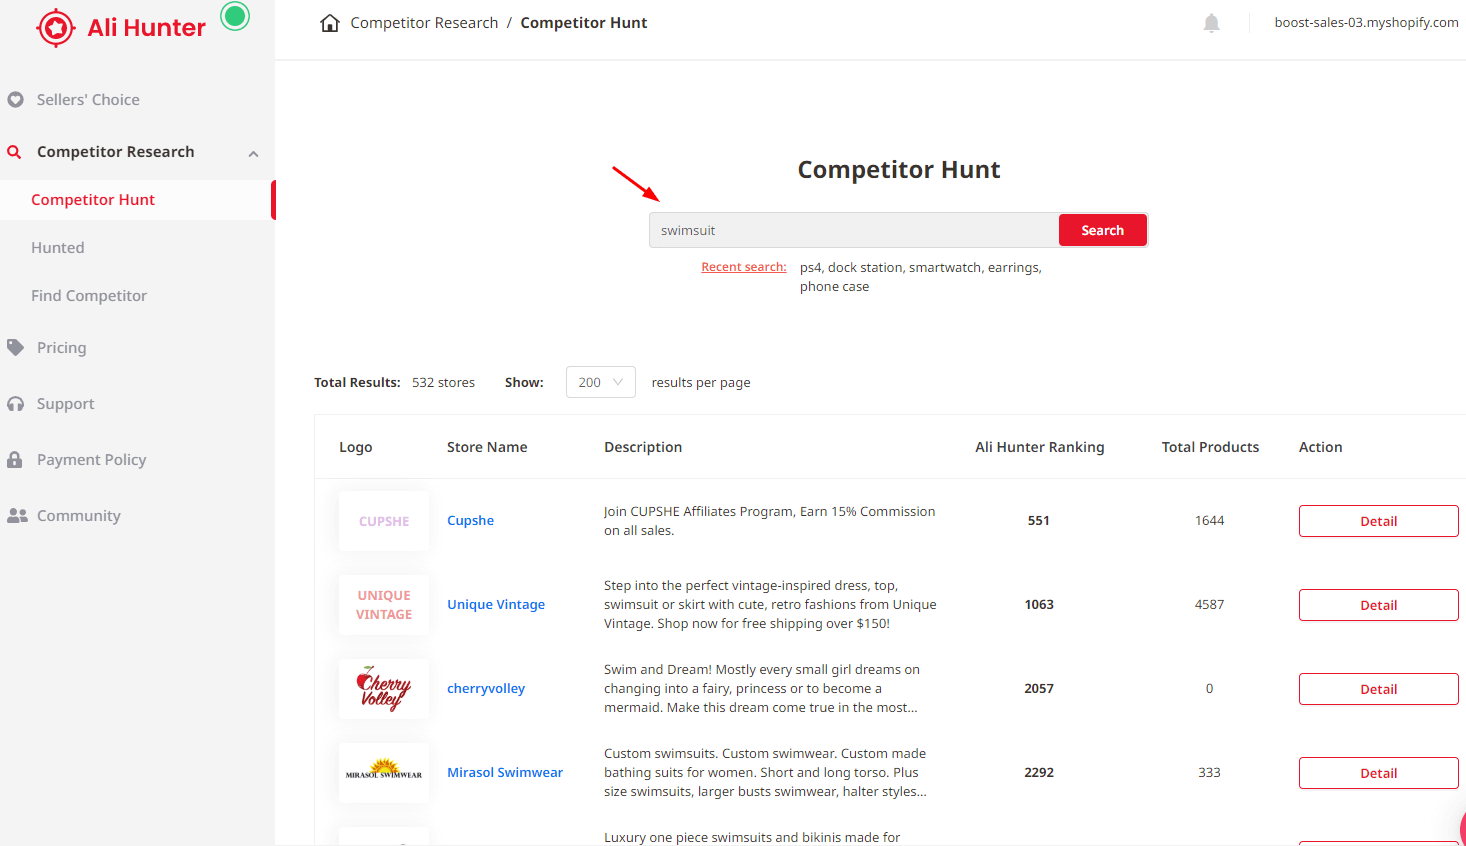 ali-hunter-in-app-function-competitor-hunt-search-products-by-keyword